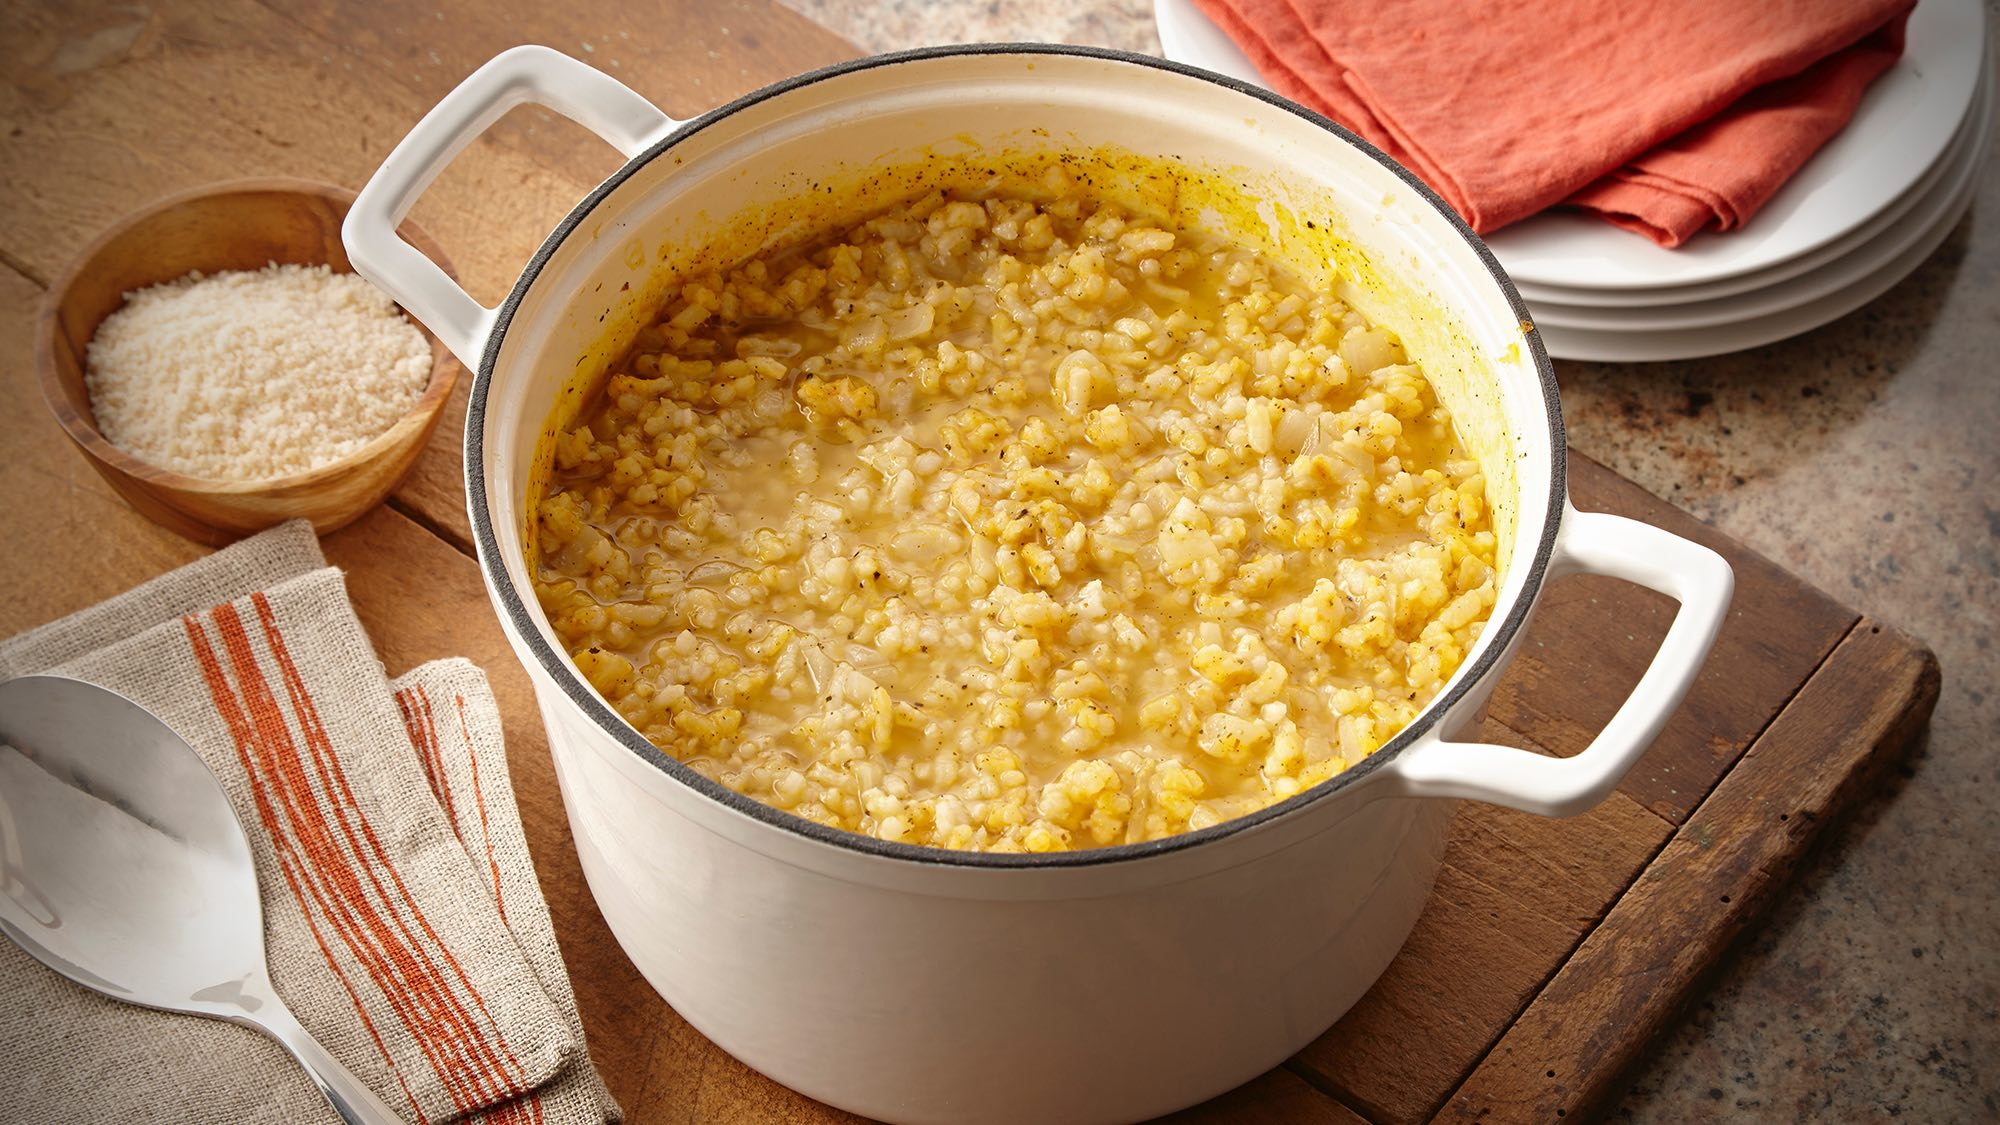 oven-baked-pumpkin-risotto.jpg